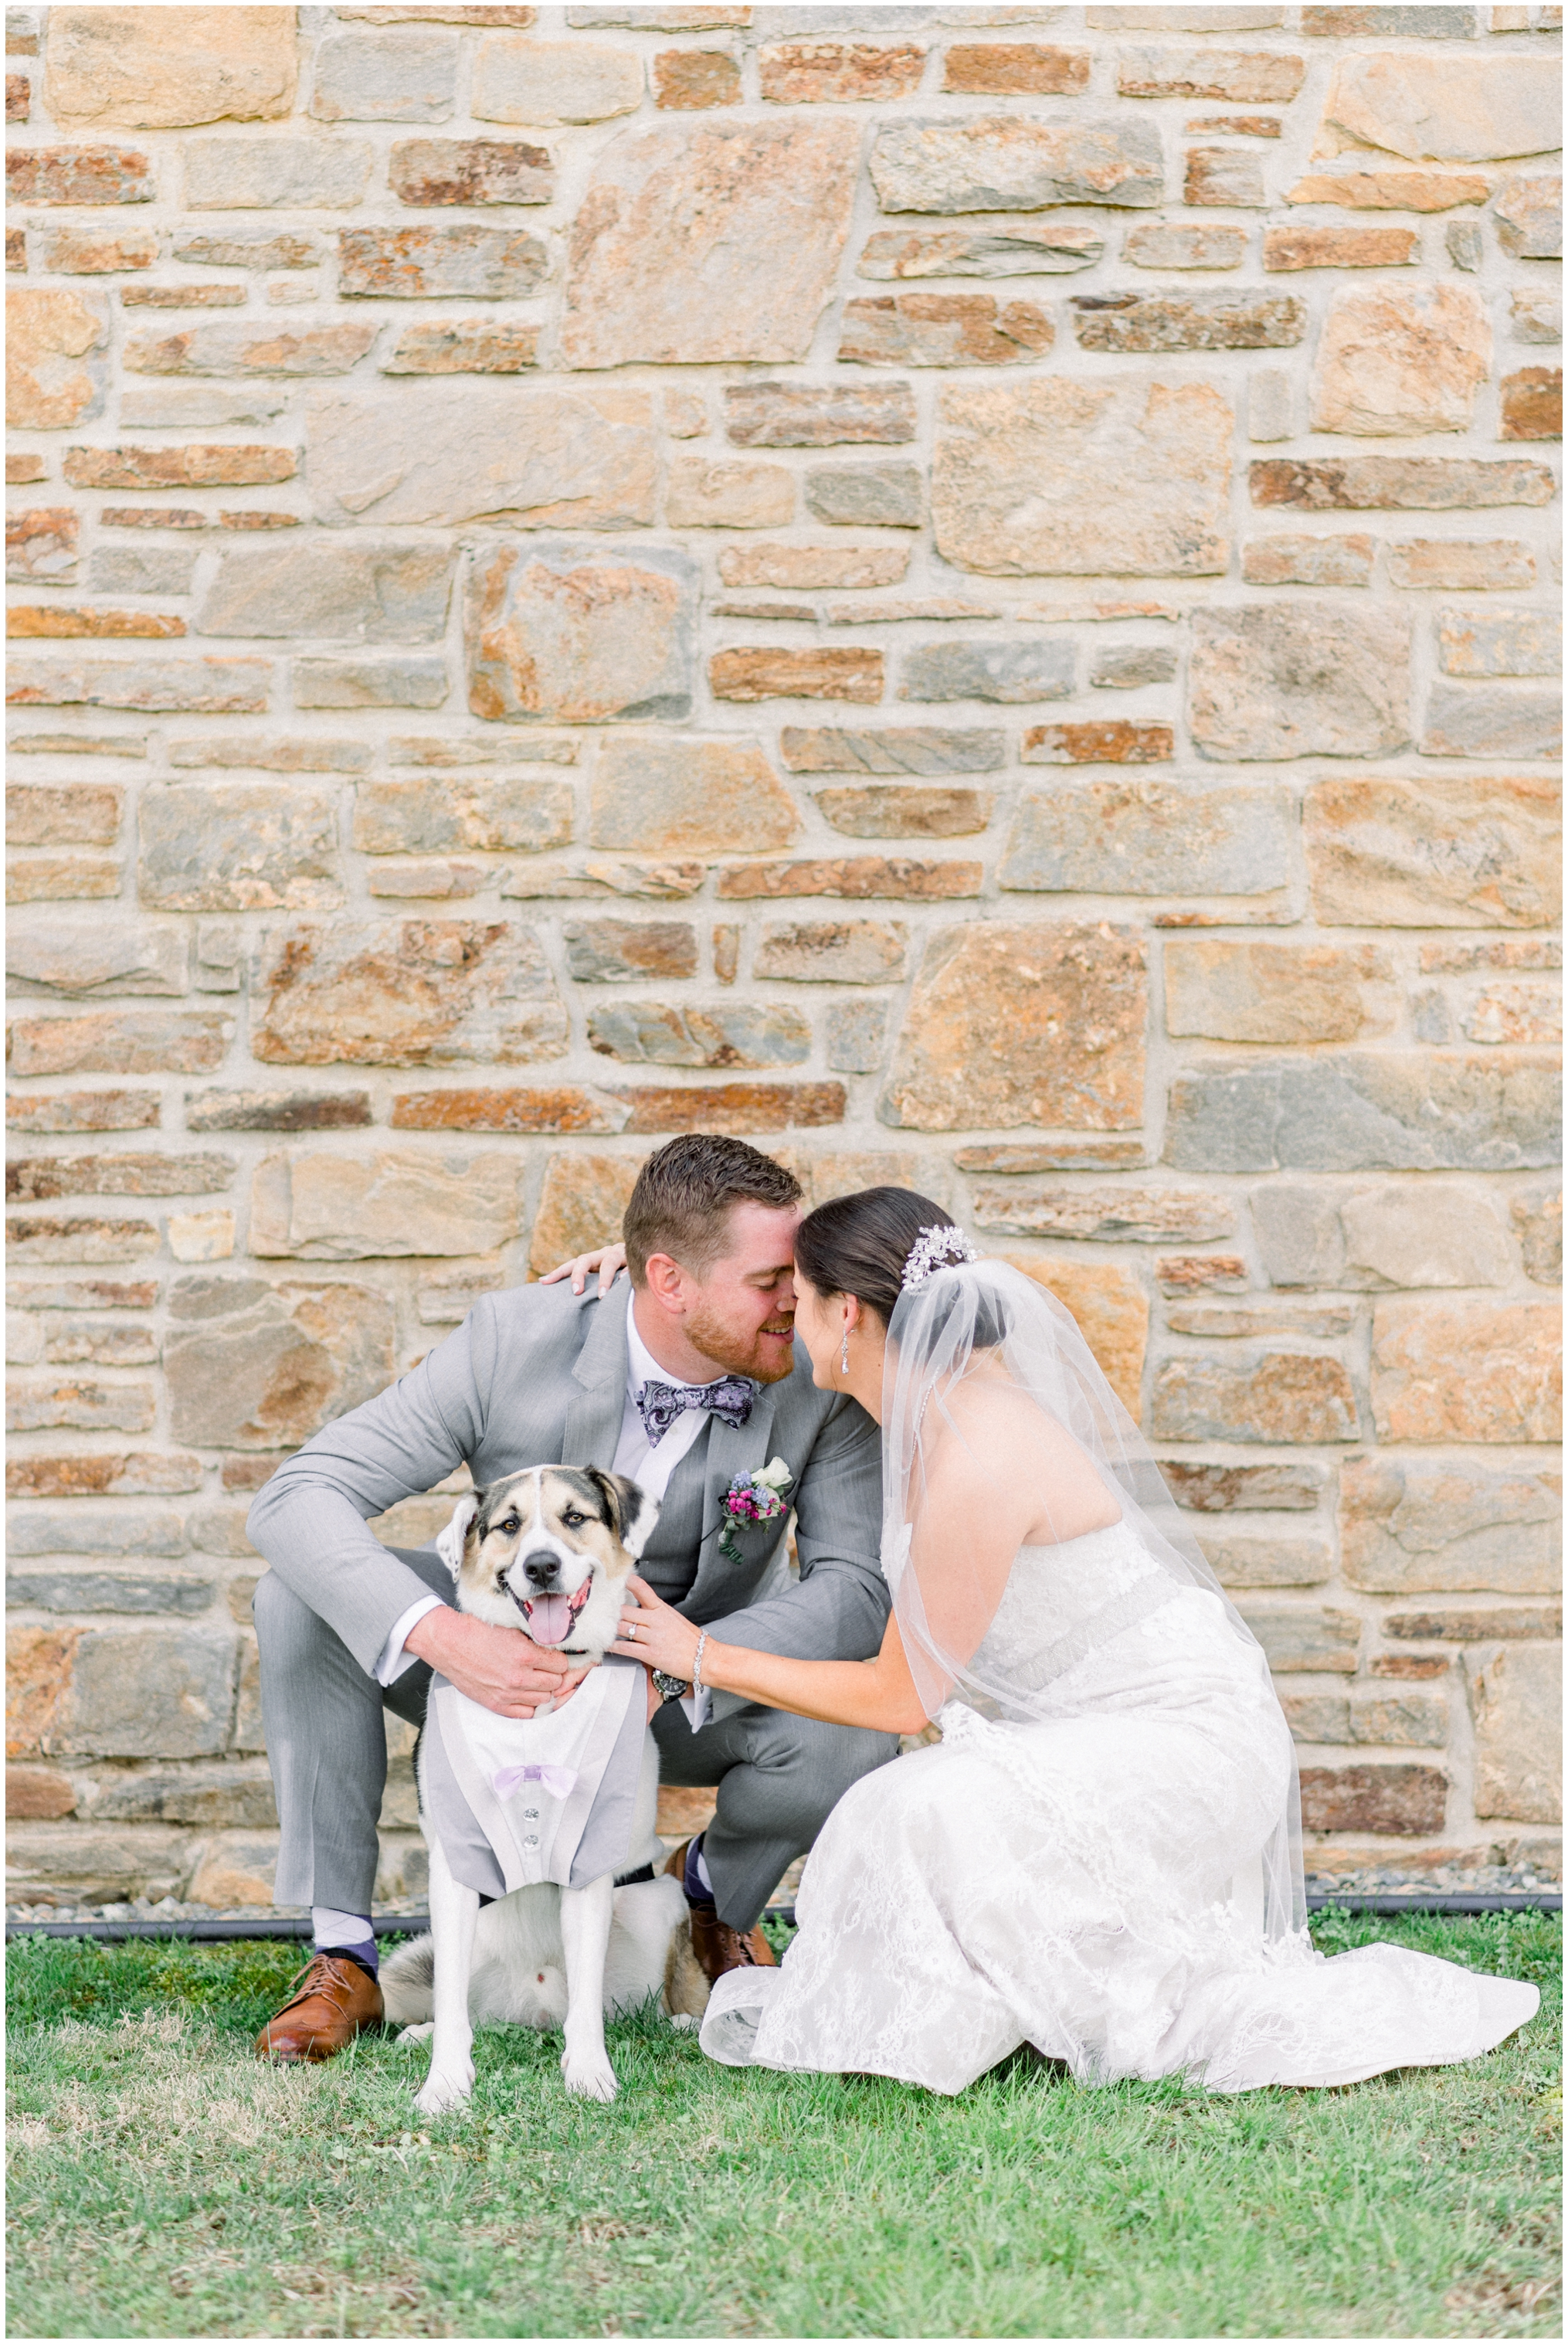 Krista Brackin Photography | April Wedding at The Carriage House at Rockwood Park_0040.jpg